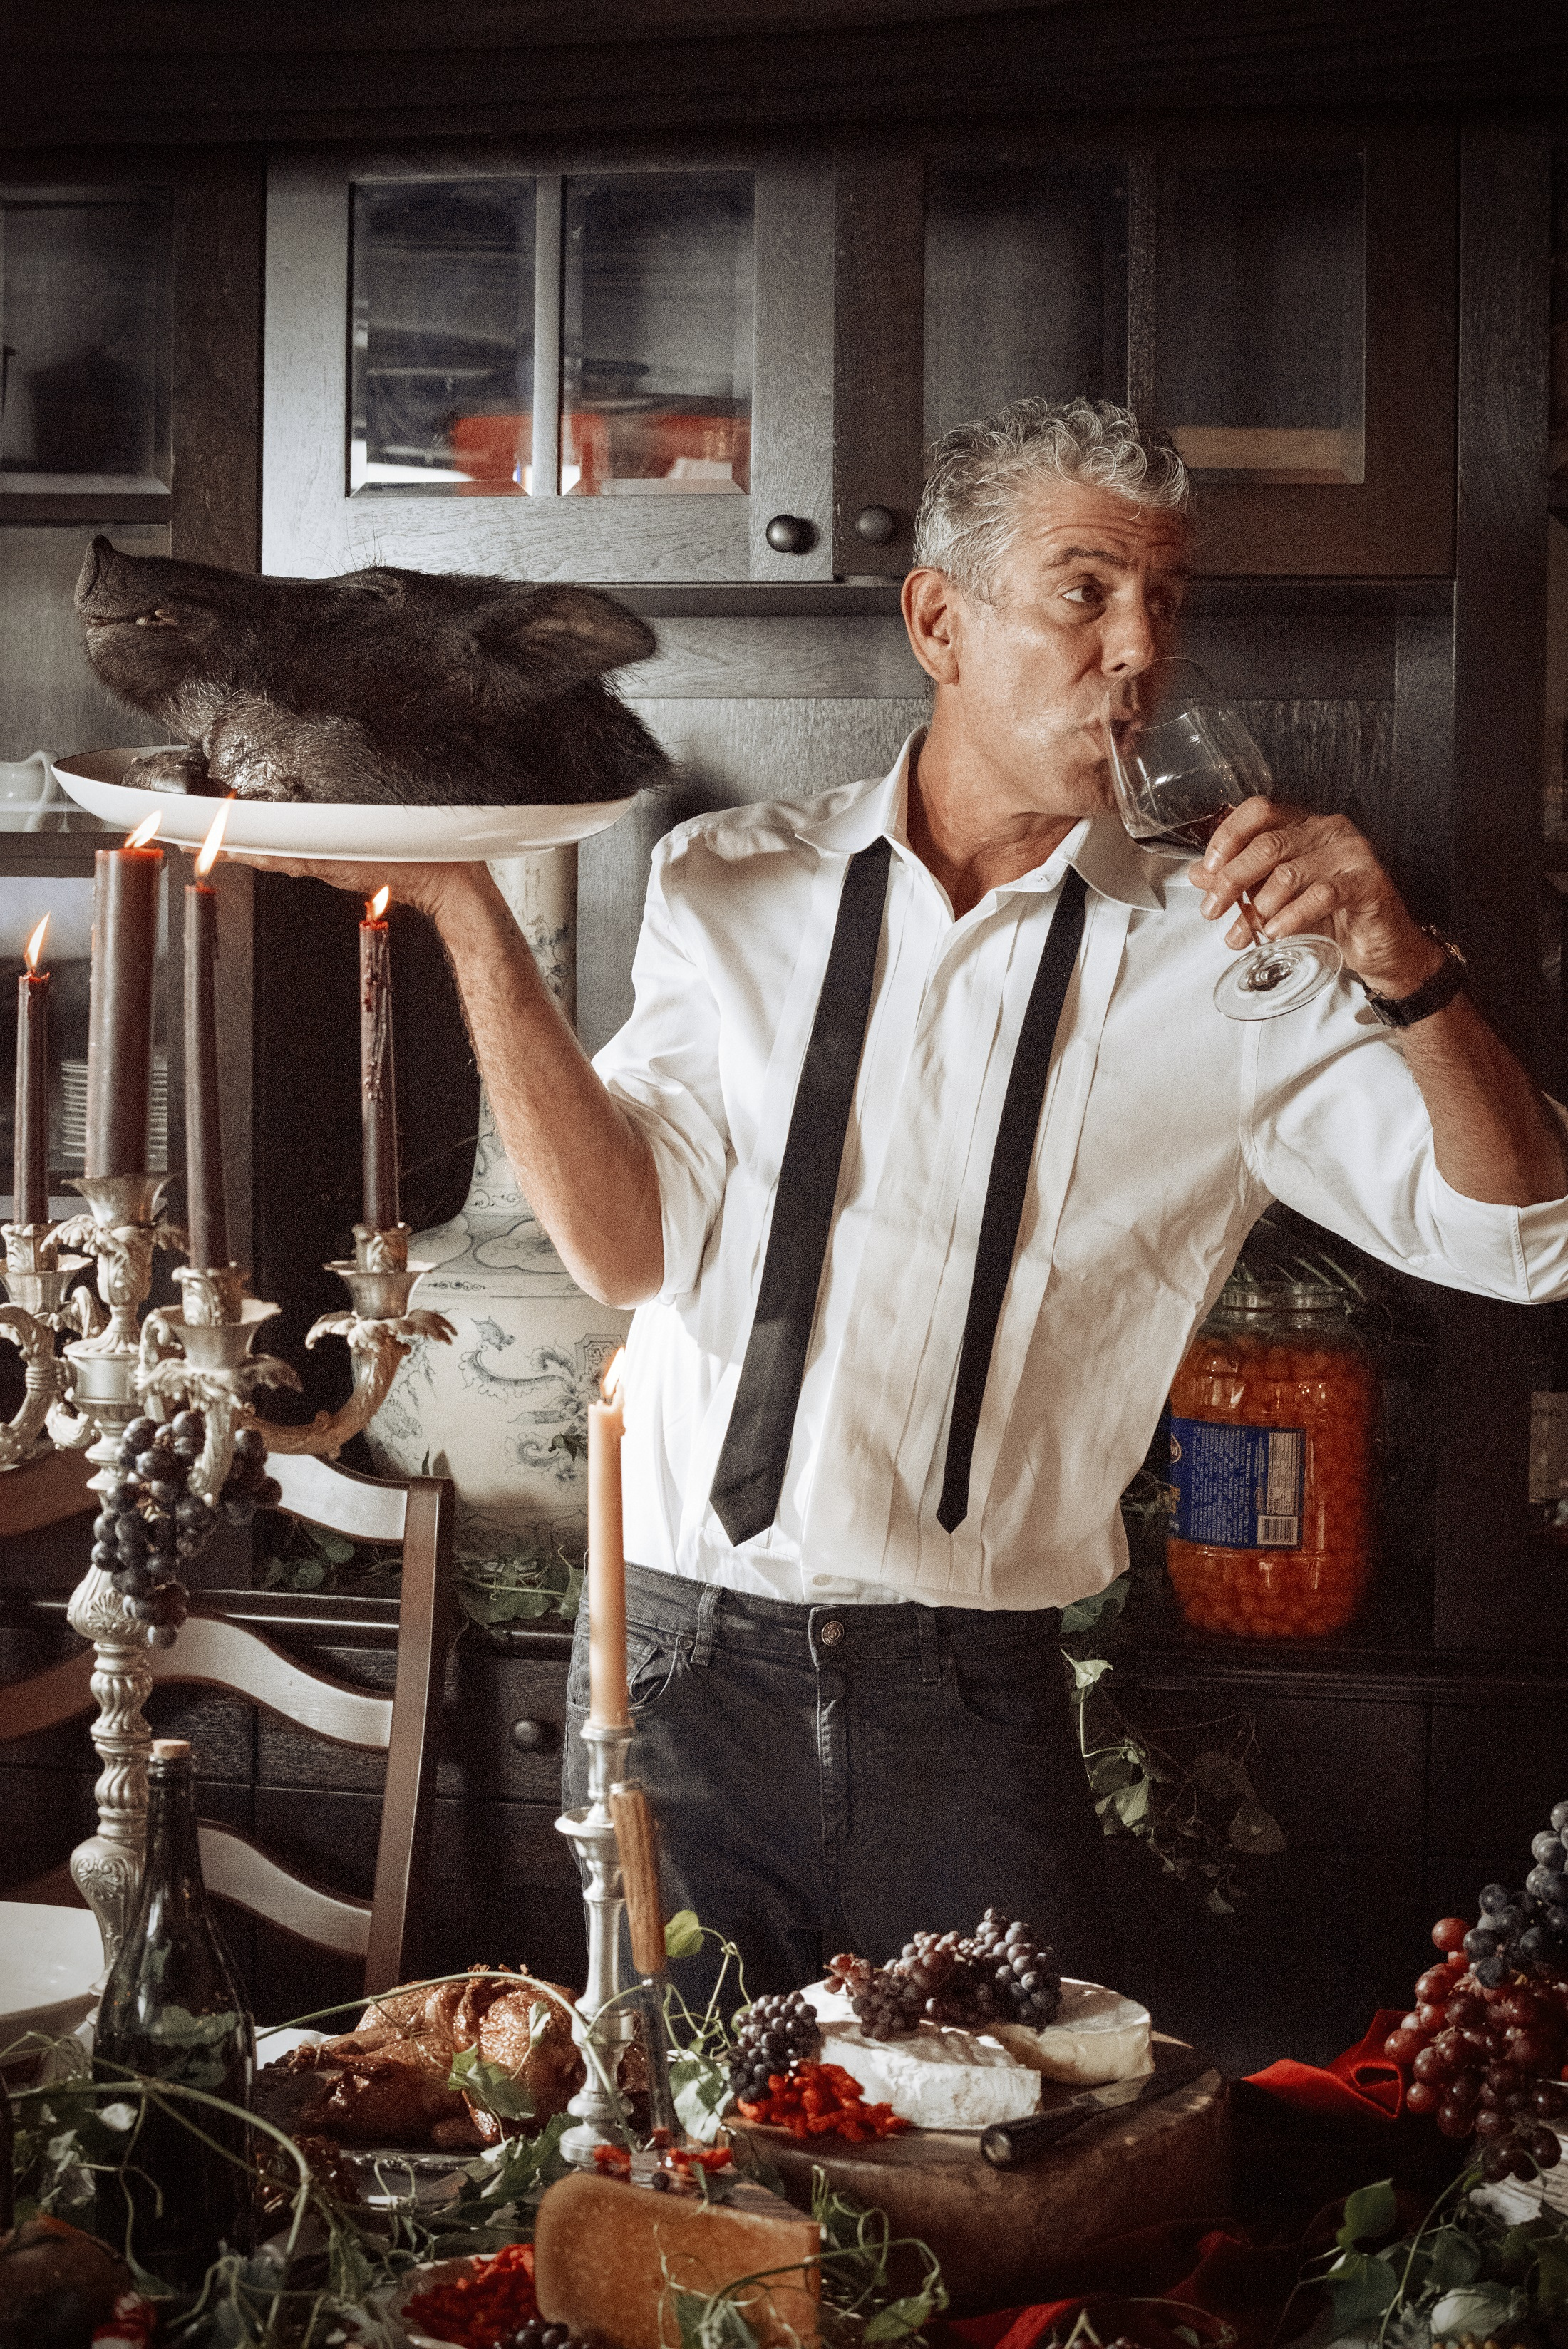 Anthony Bourdain's Next Live Tour to Hit 15 Cities This Fall